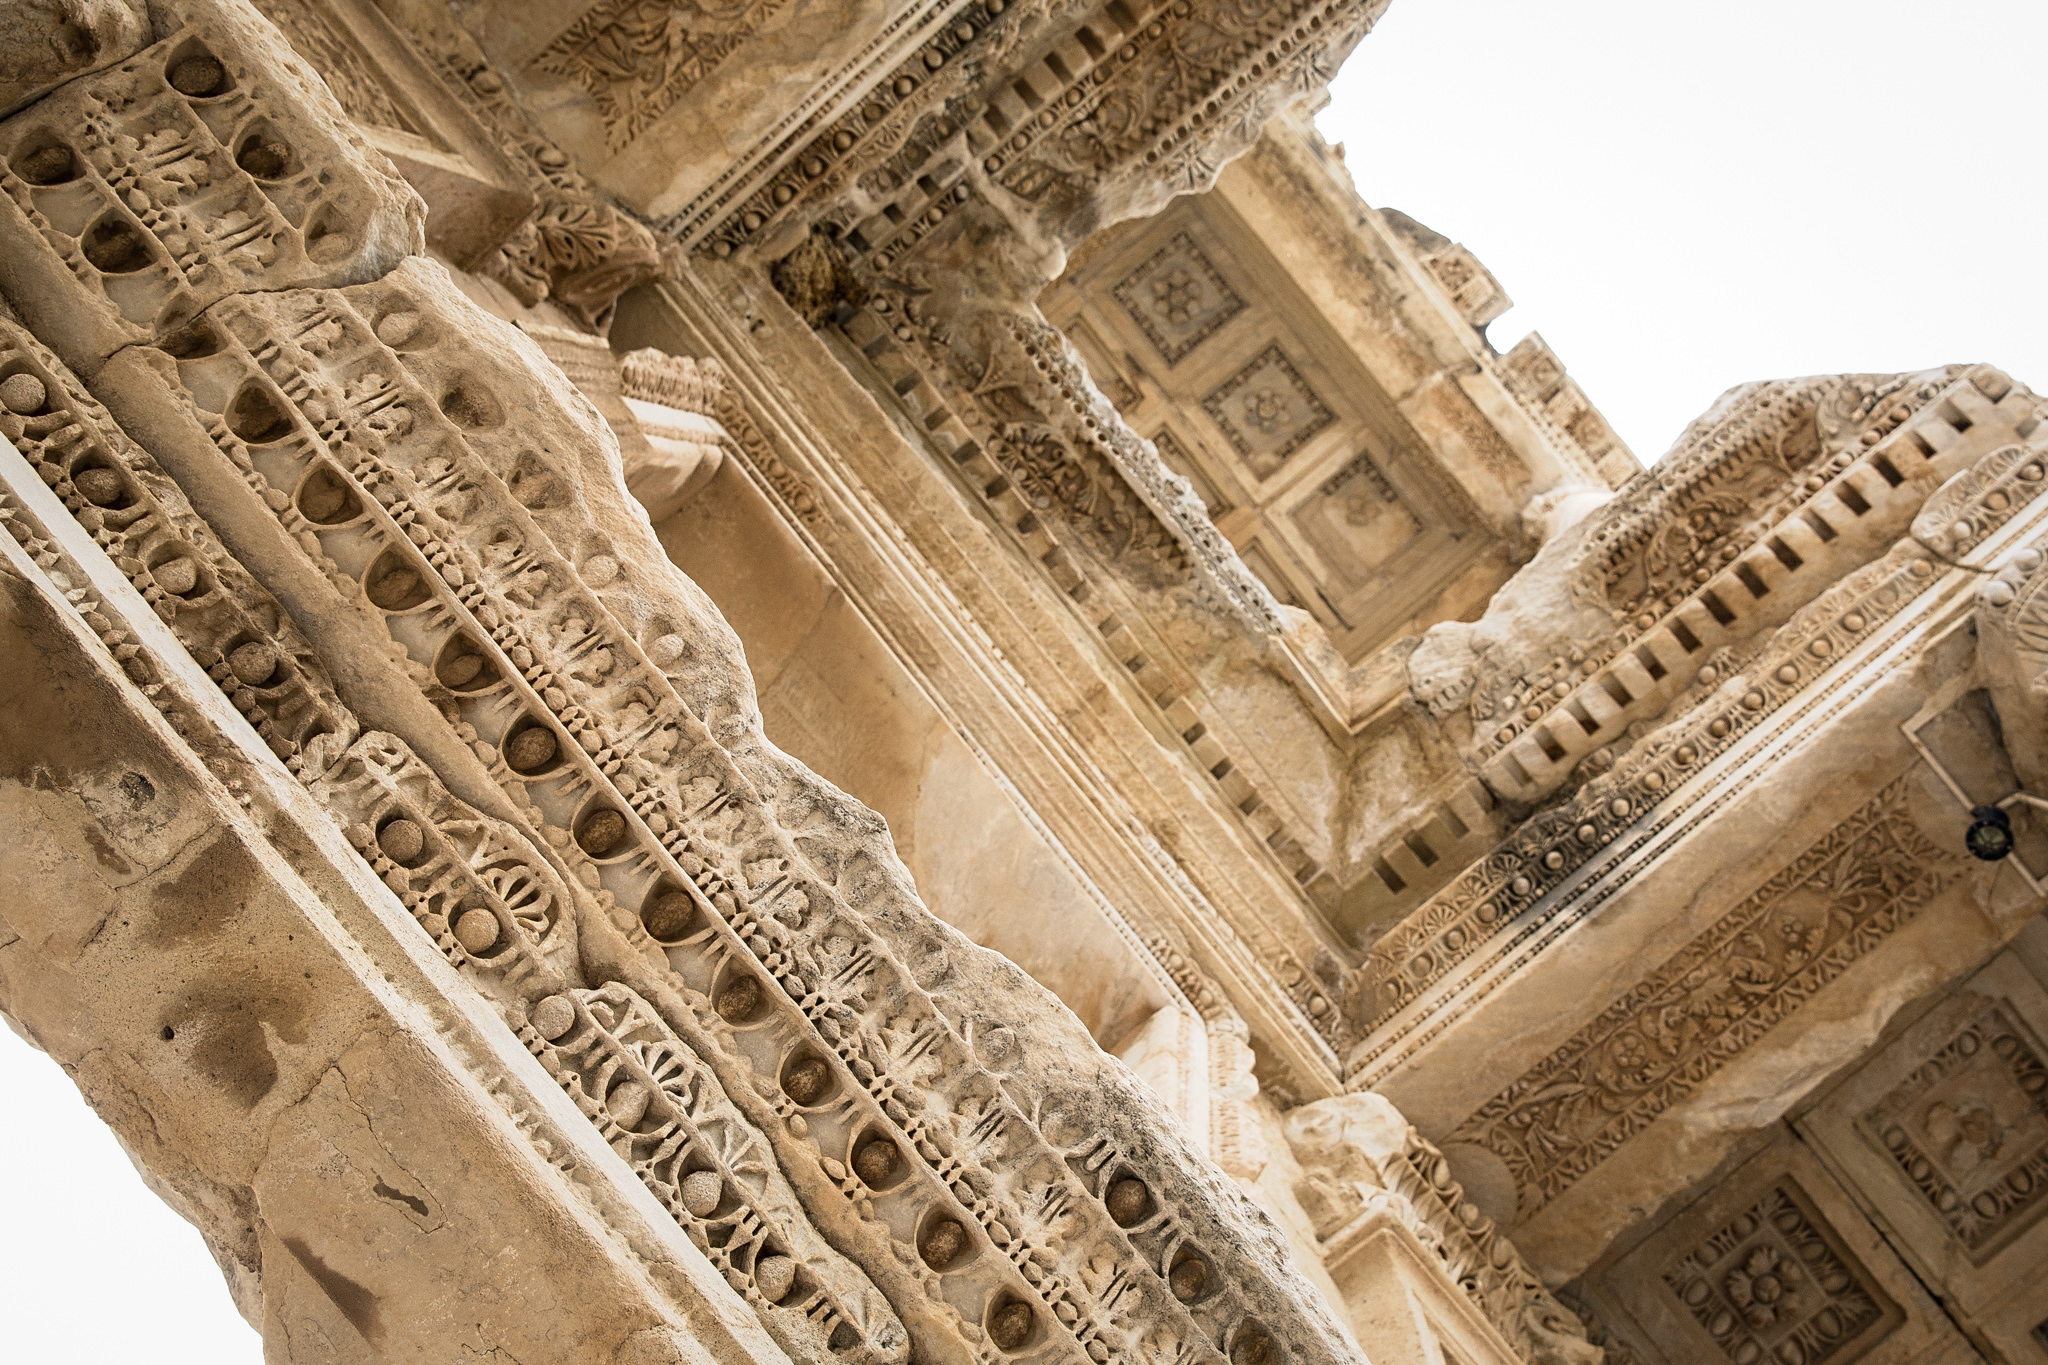 ephesus-2249-gate-of-mazeus-from-beneath.jpg